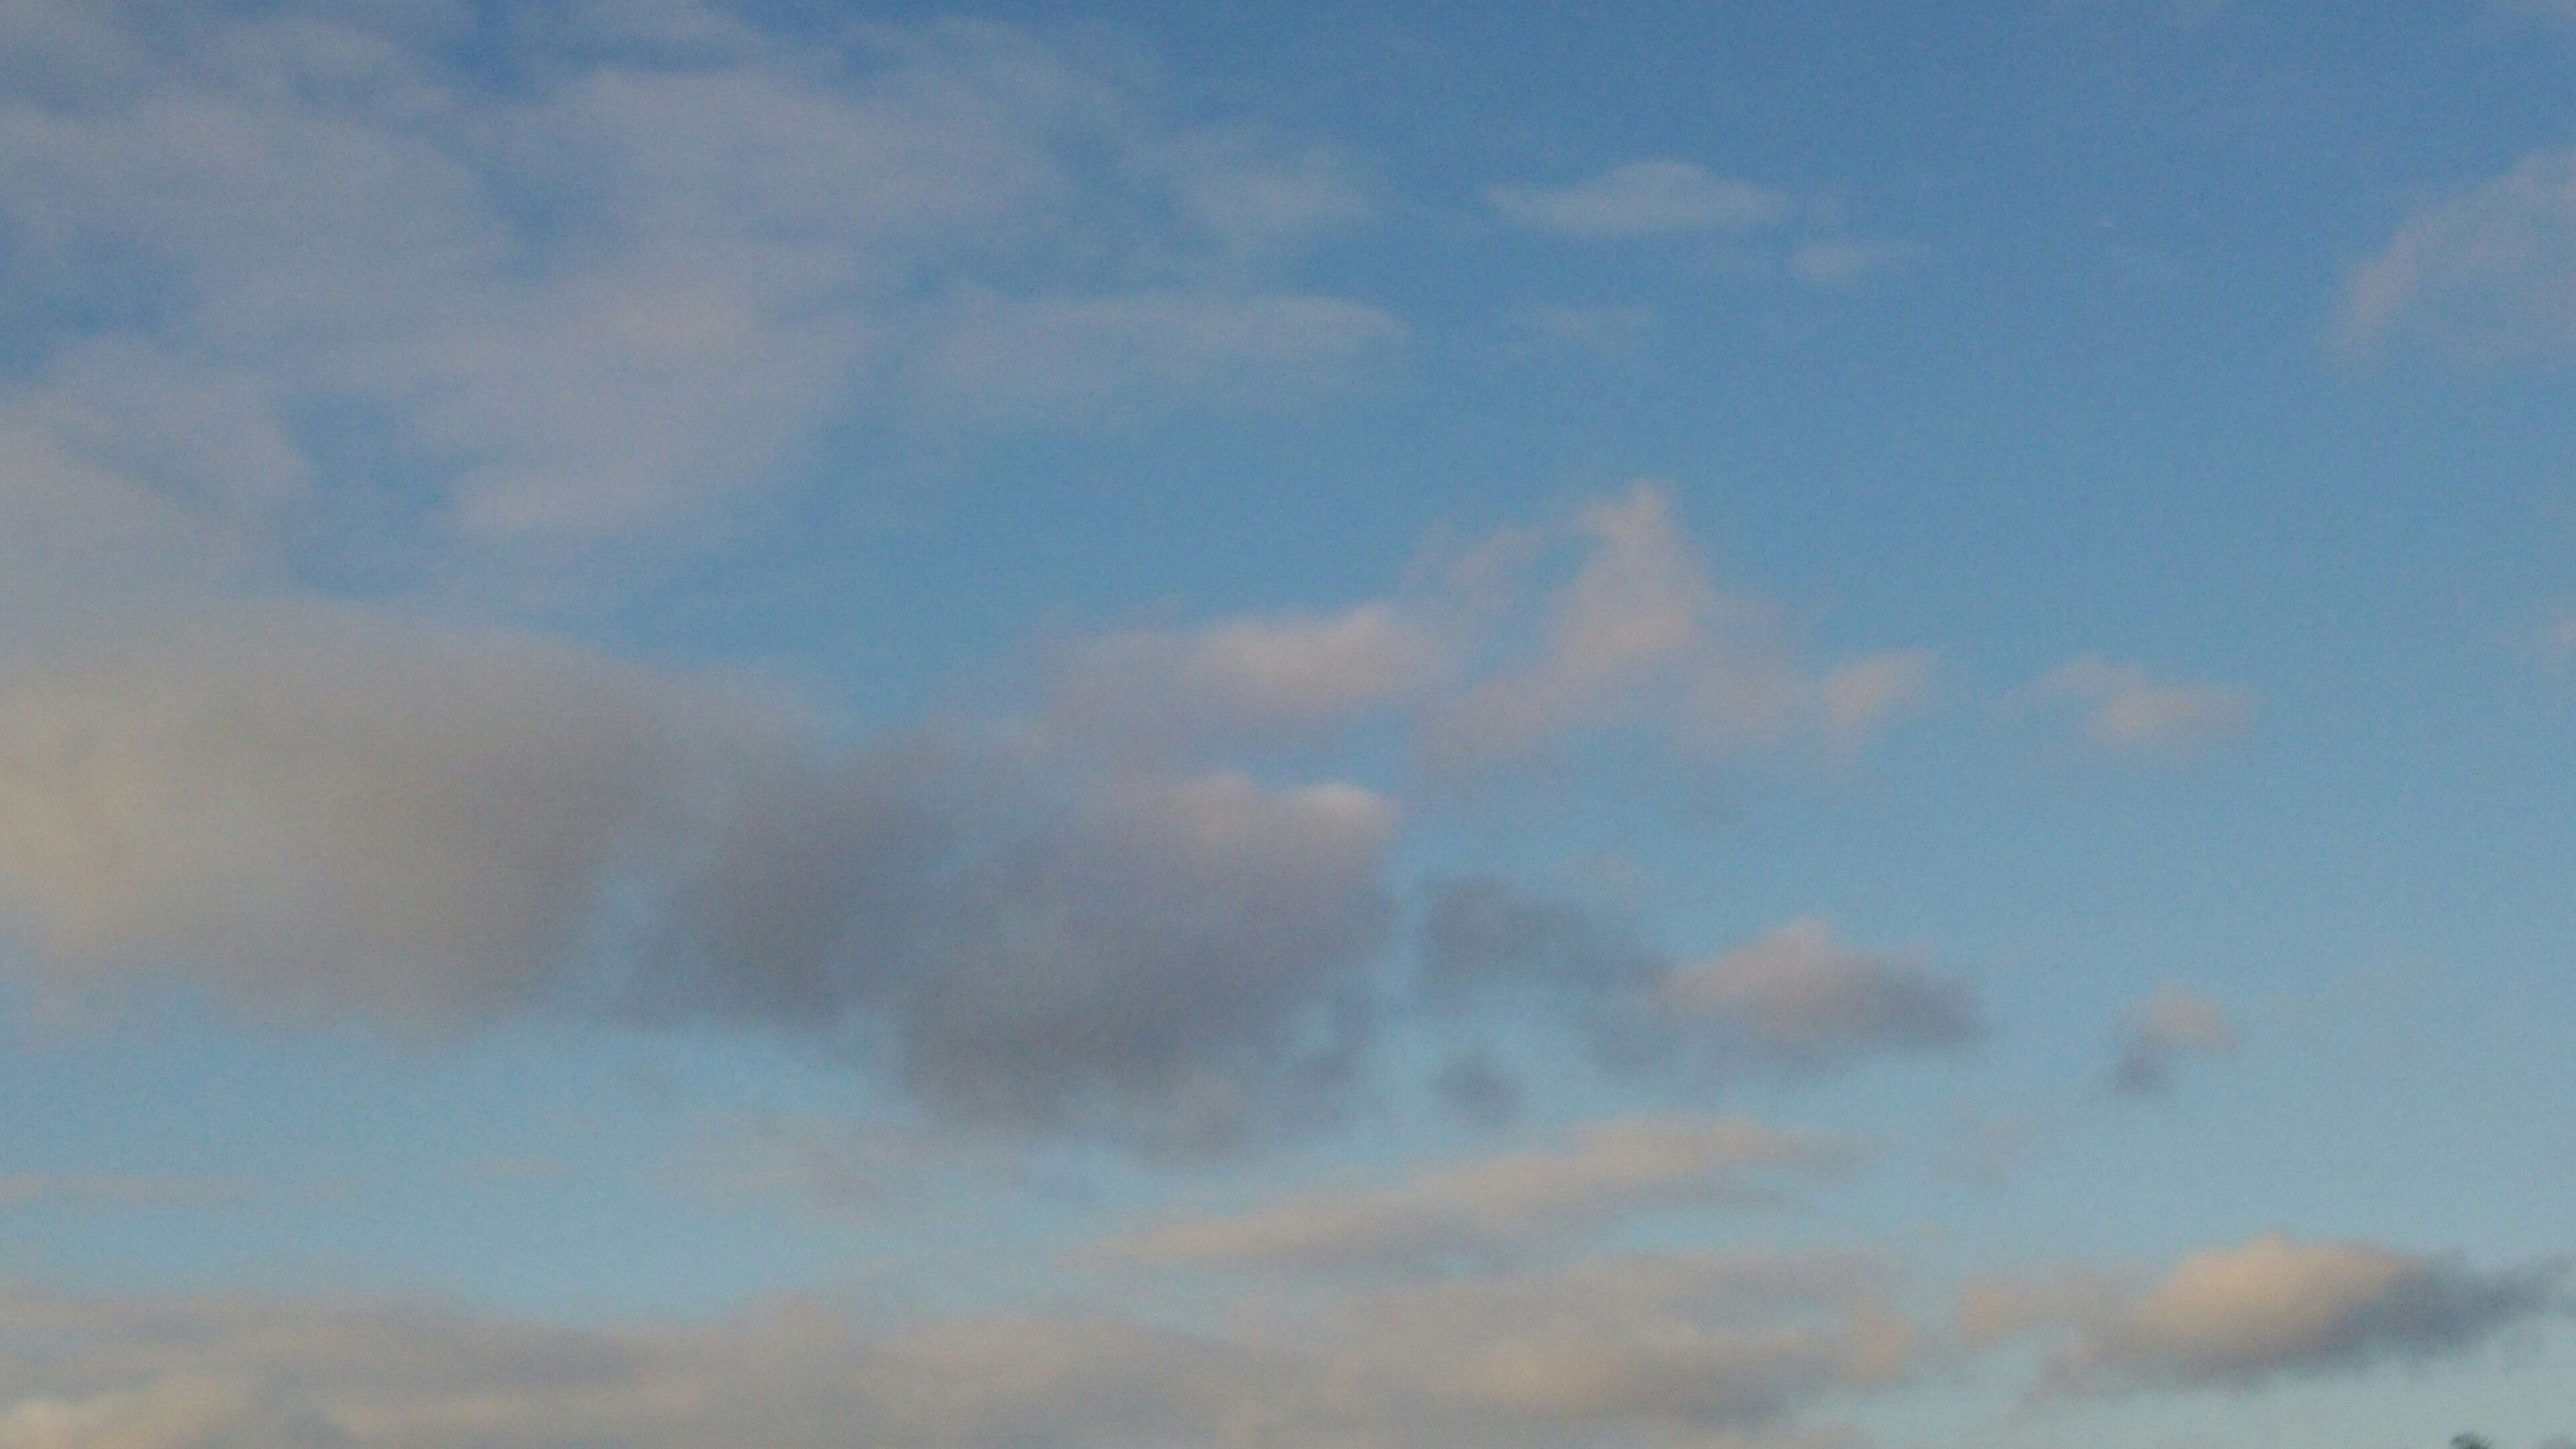 sky, cloud - sky, low angle view, tranquility, beauty in nature, scenics, tranquil scene, nature, cloudy, blue, cloud, idyllic, backgrounds, outdoors, no people, day, full frame, cloudscape, sky only, weather